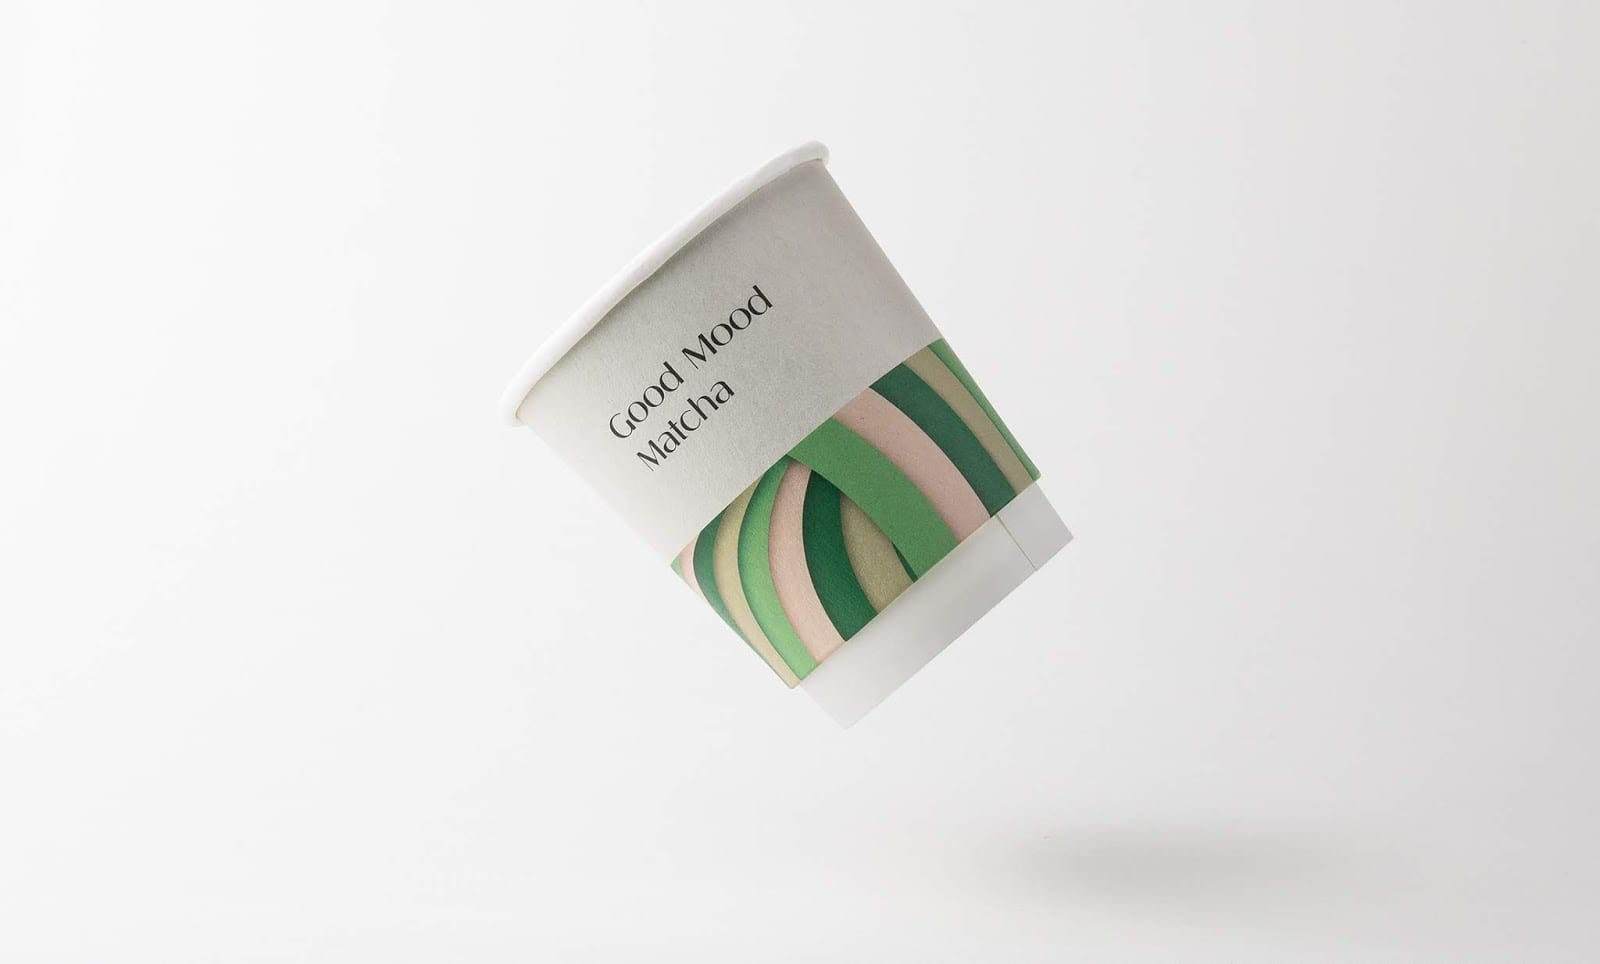 Good Mood Macha 04 - Ach, tie obaly – Good Mood Matcha